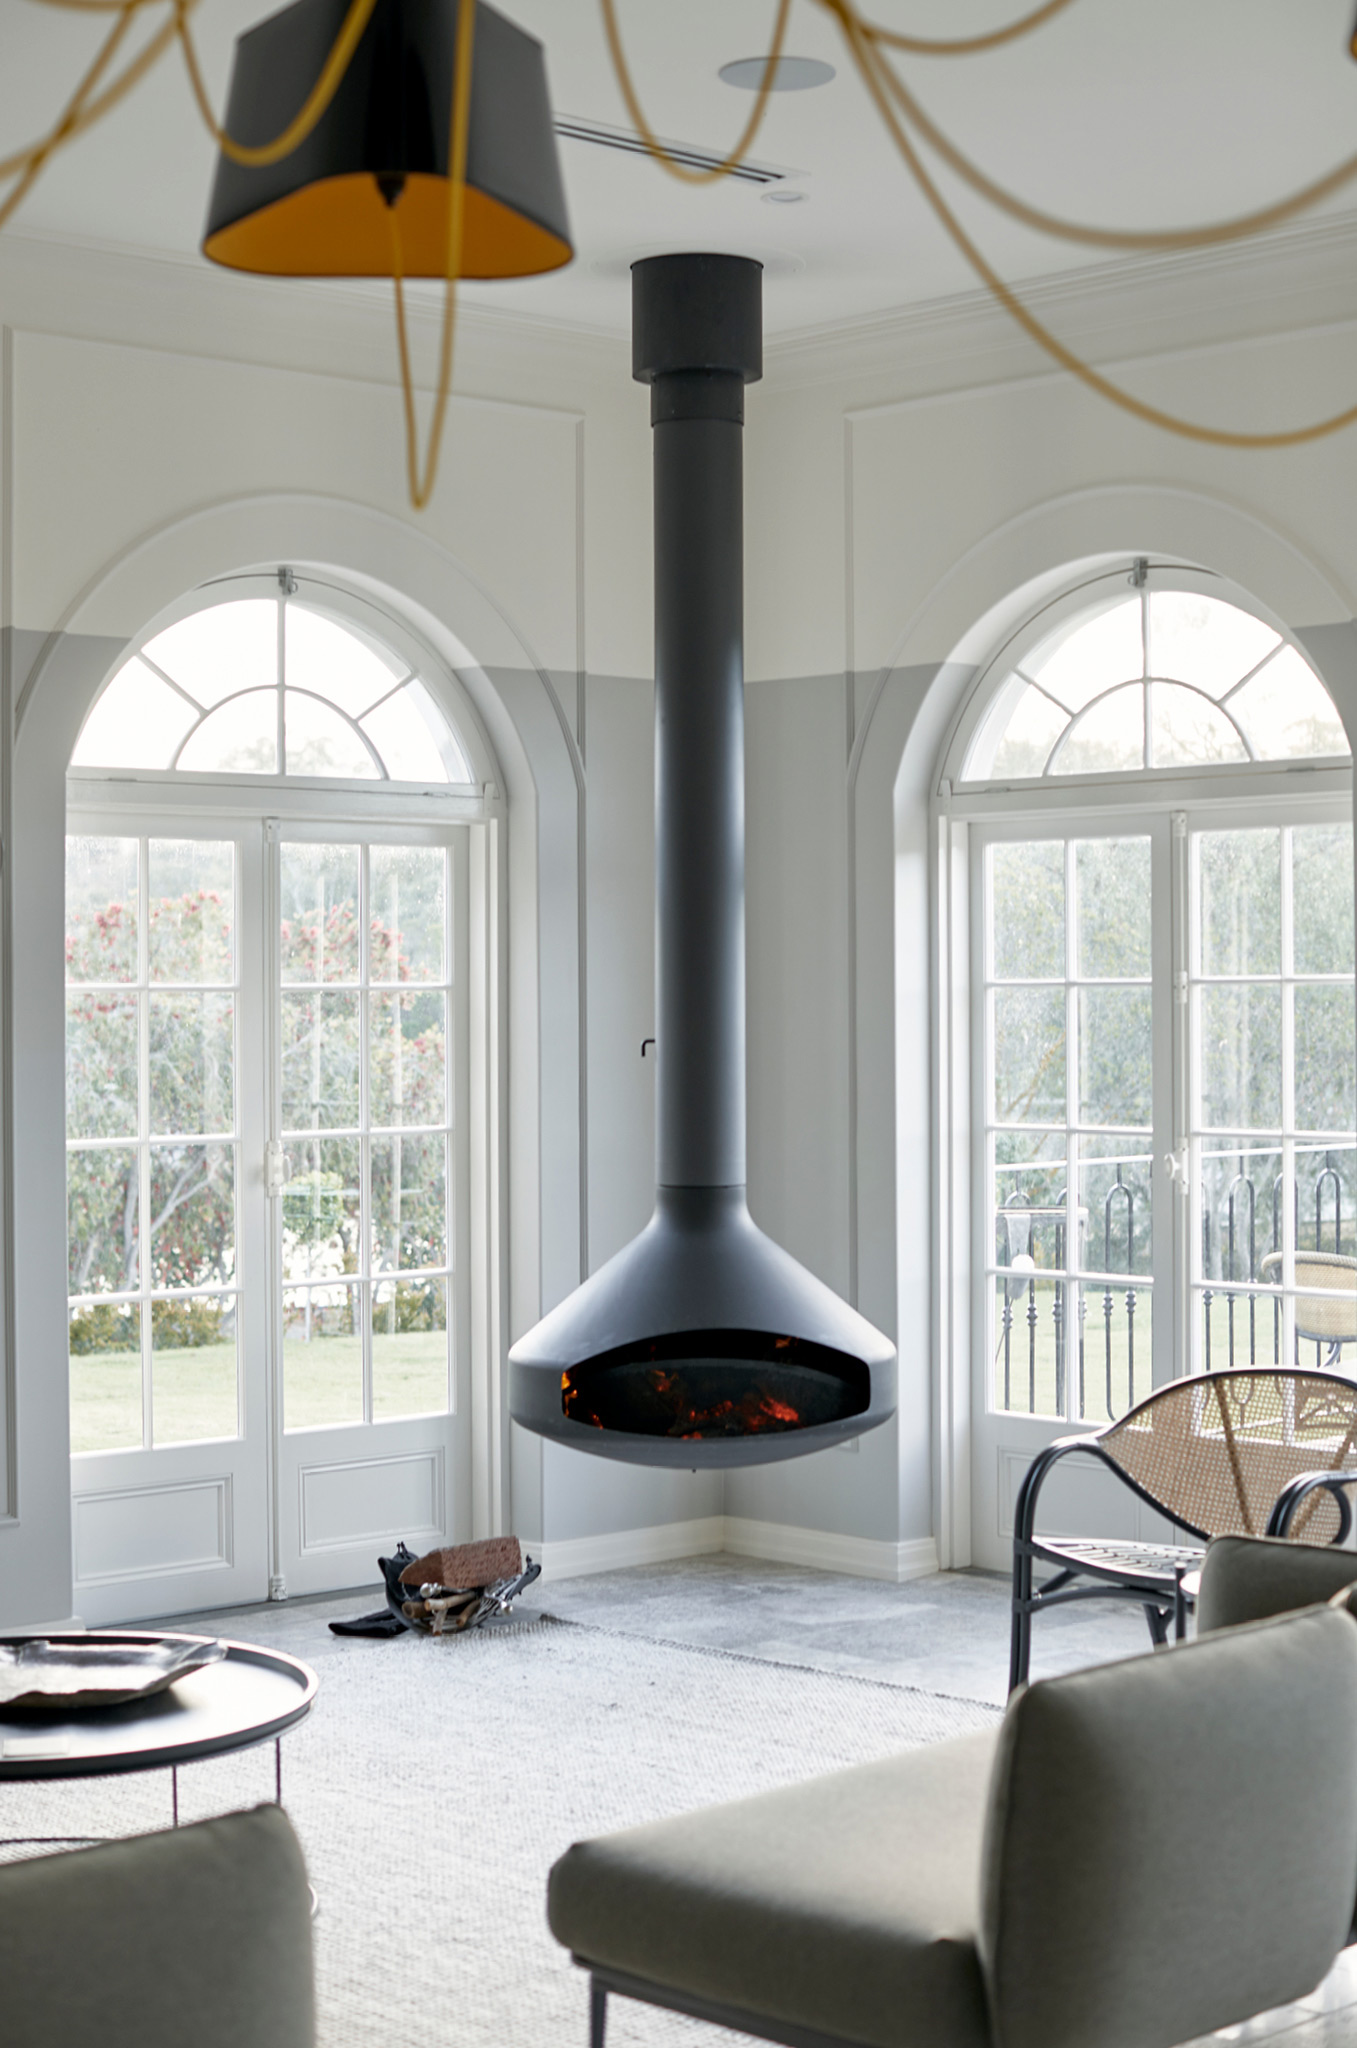 Oblica Suspended Fireplace